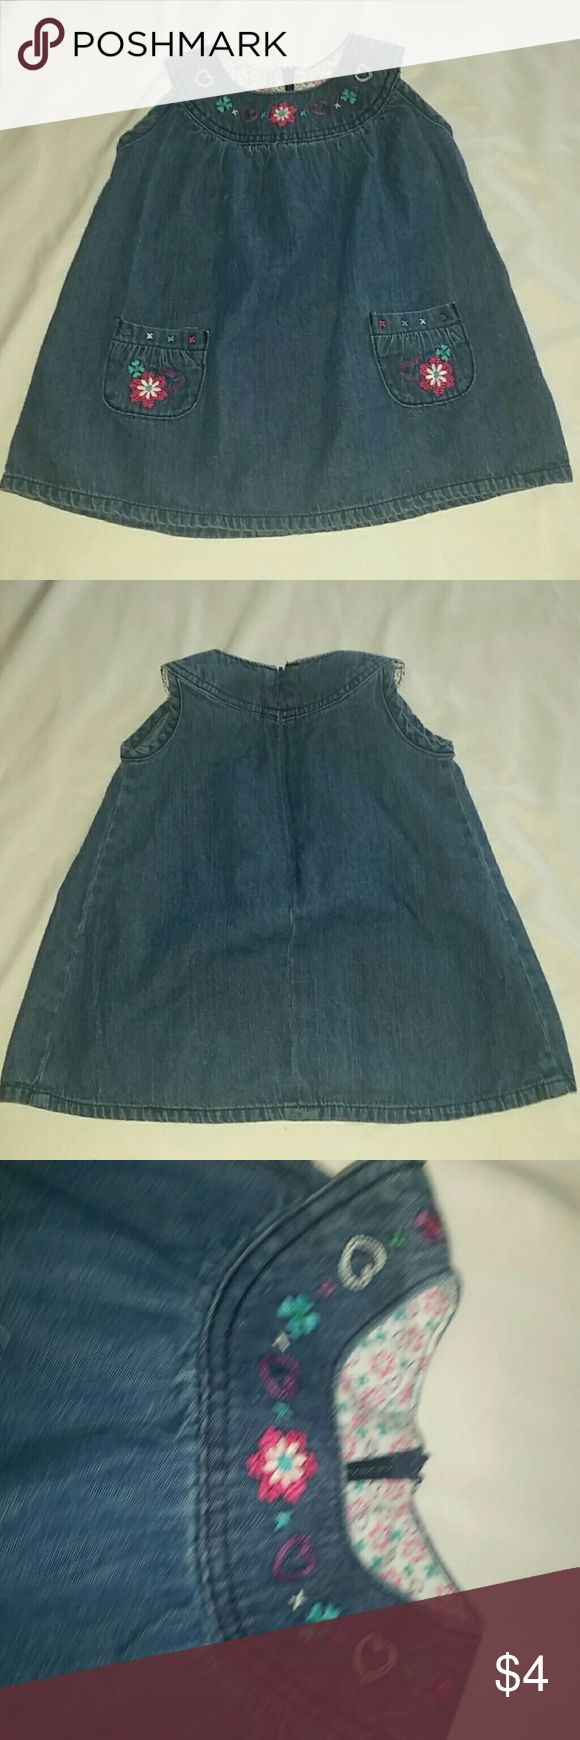 Girls Jean sack dress 18 months Super cute blue denim sack dress with flowers and hearts embroidered around the oval neckline and two front pockets Arizona Jean Company Dresses Casual